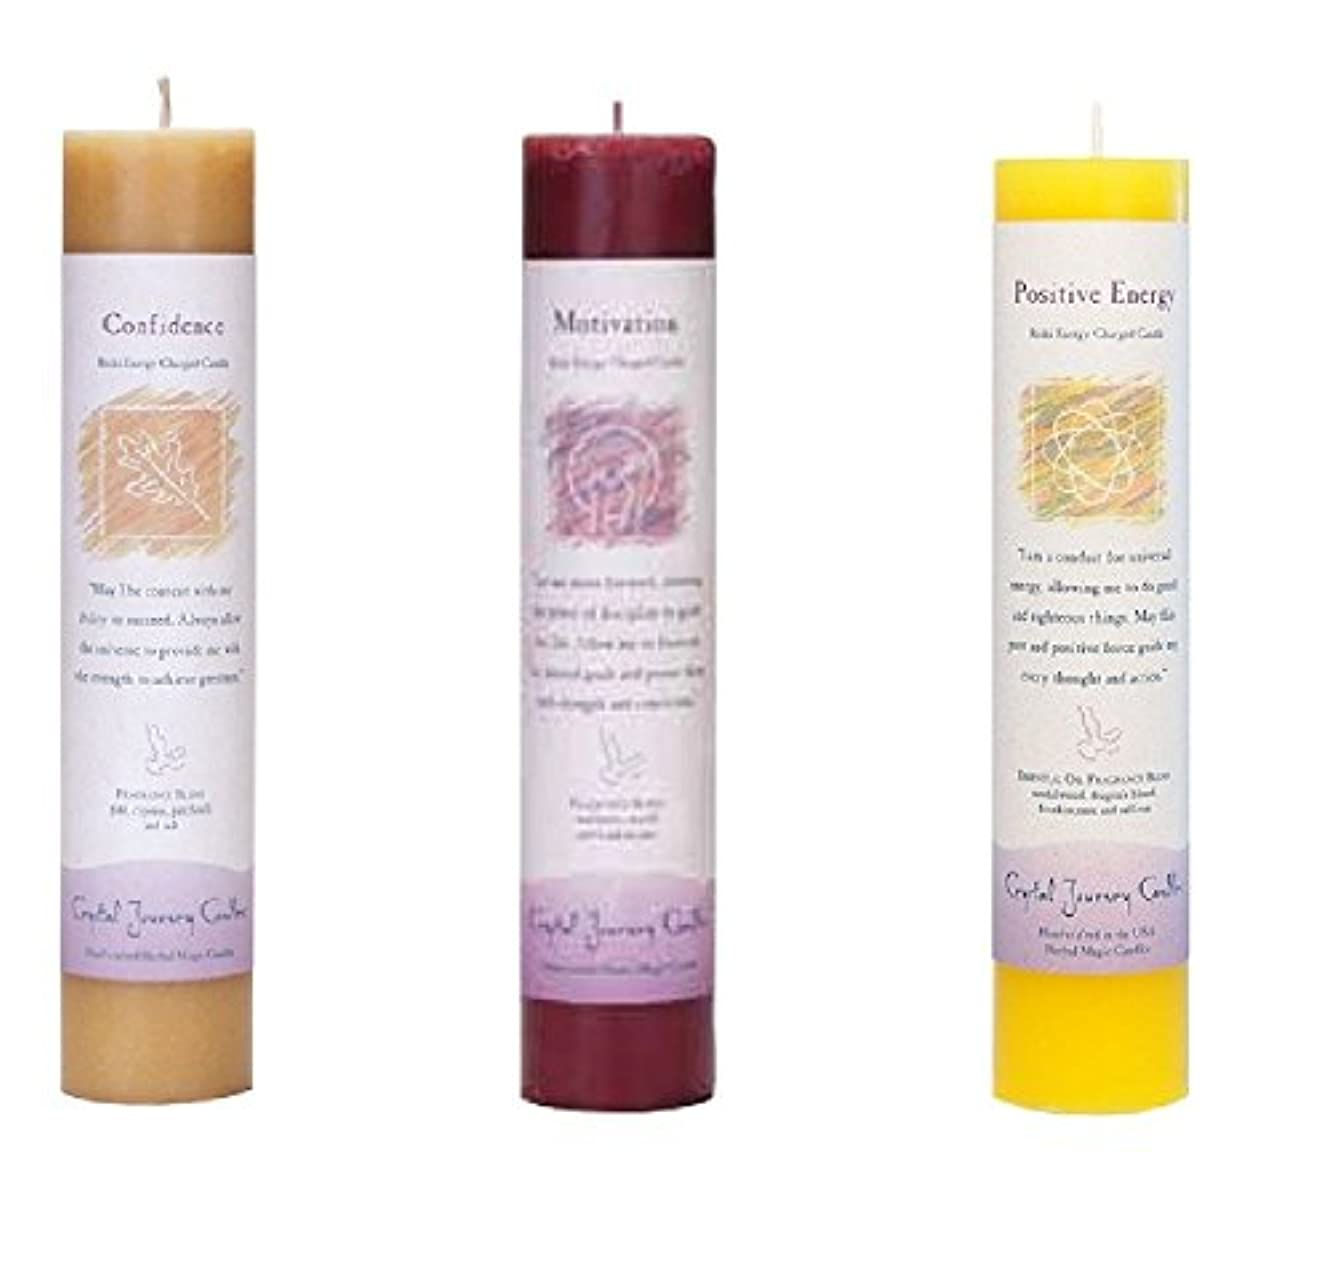 (Confidence, motivation, positive energy) - Crystal Journey Reiki Charged Herbal Magic Pillar Candle Bundle (Confidence...